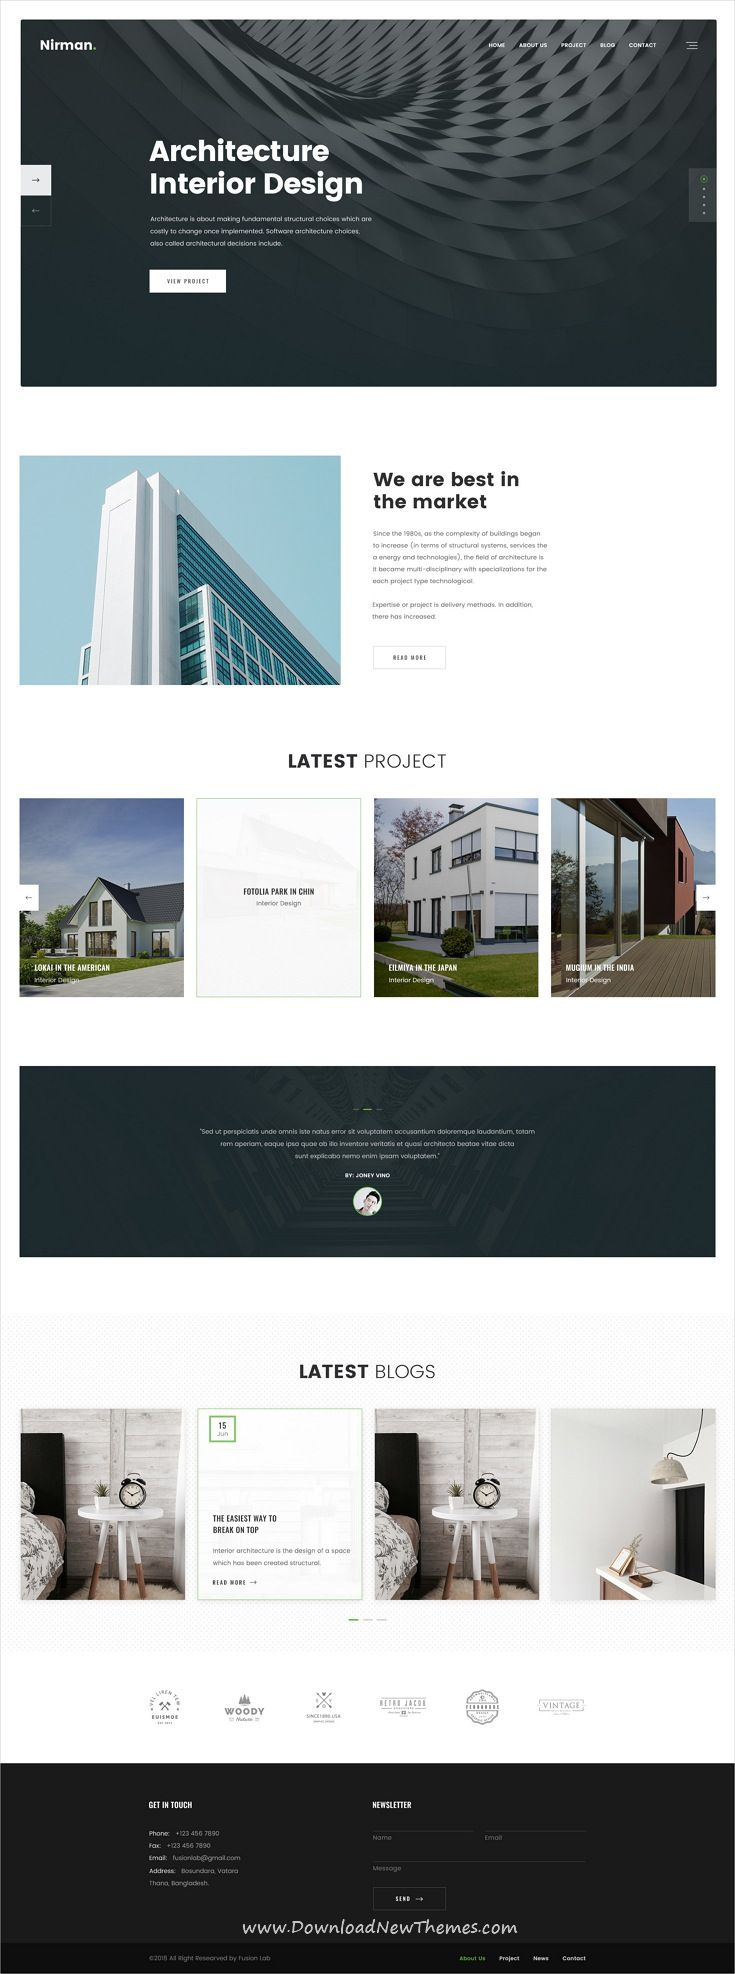 Umbra is the premium PSD template for interior and furnitu